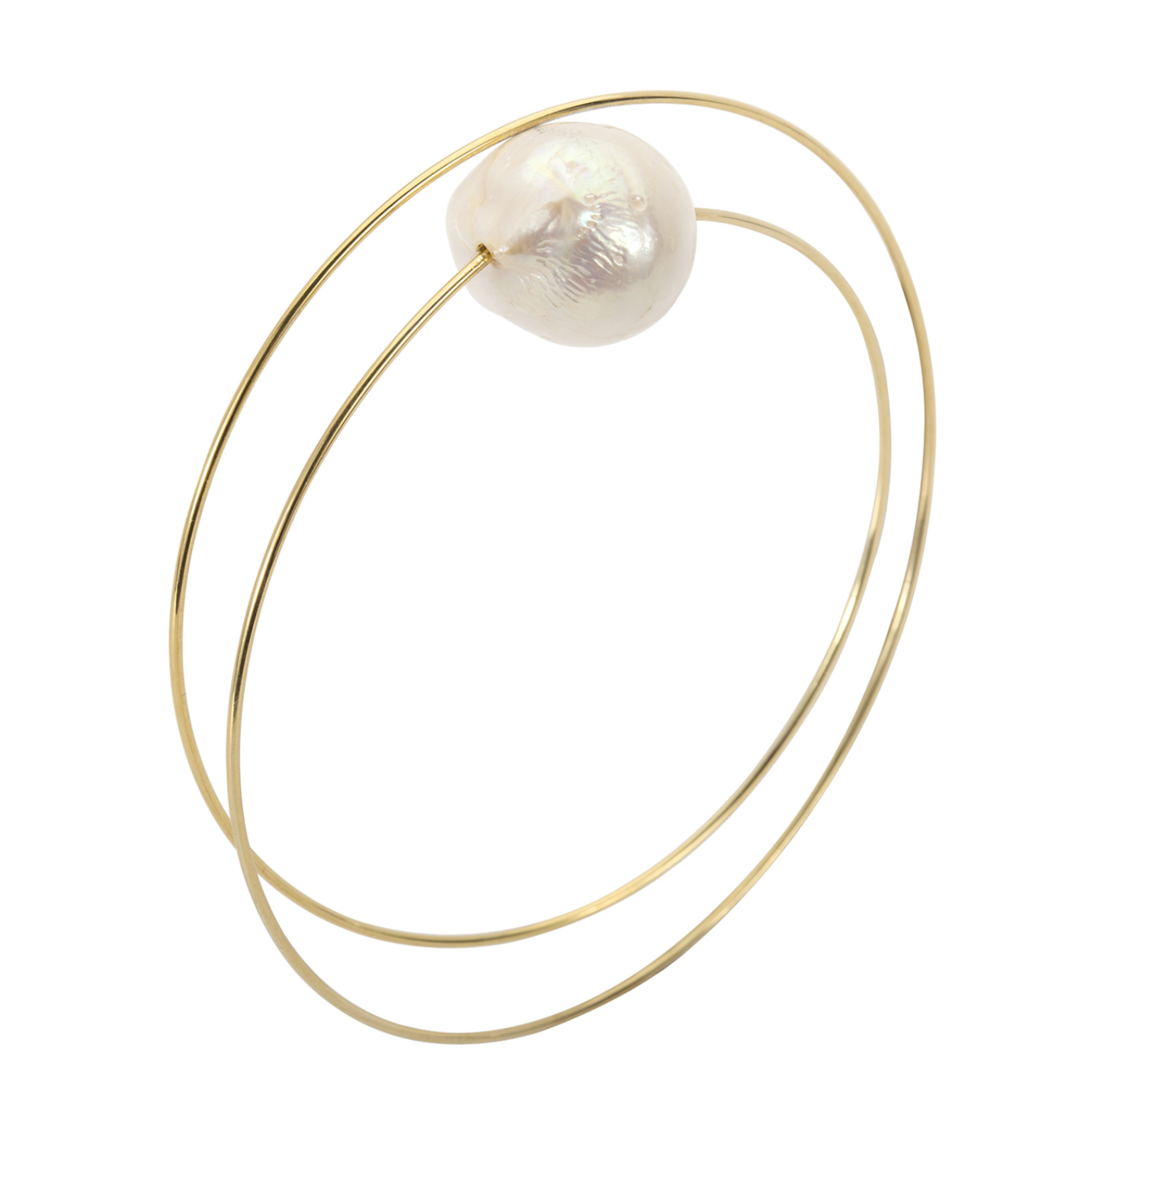 MELISSA MCATHUR Circle Wrap Bangle